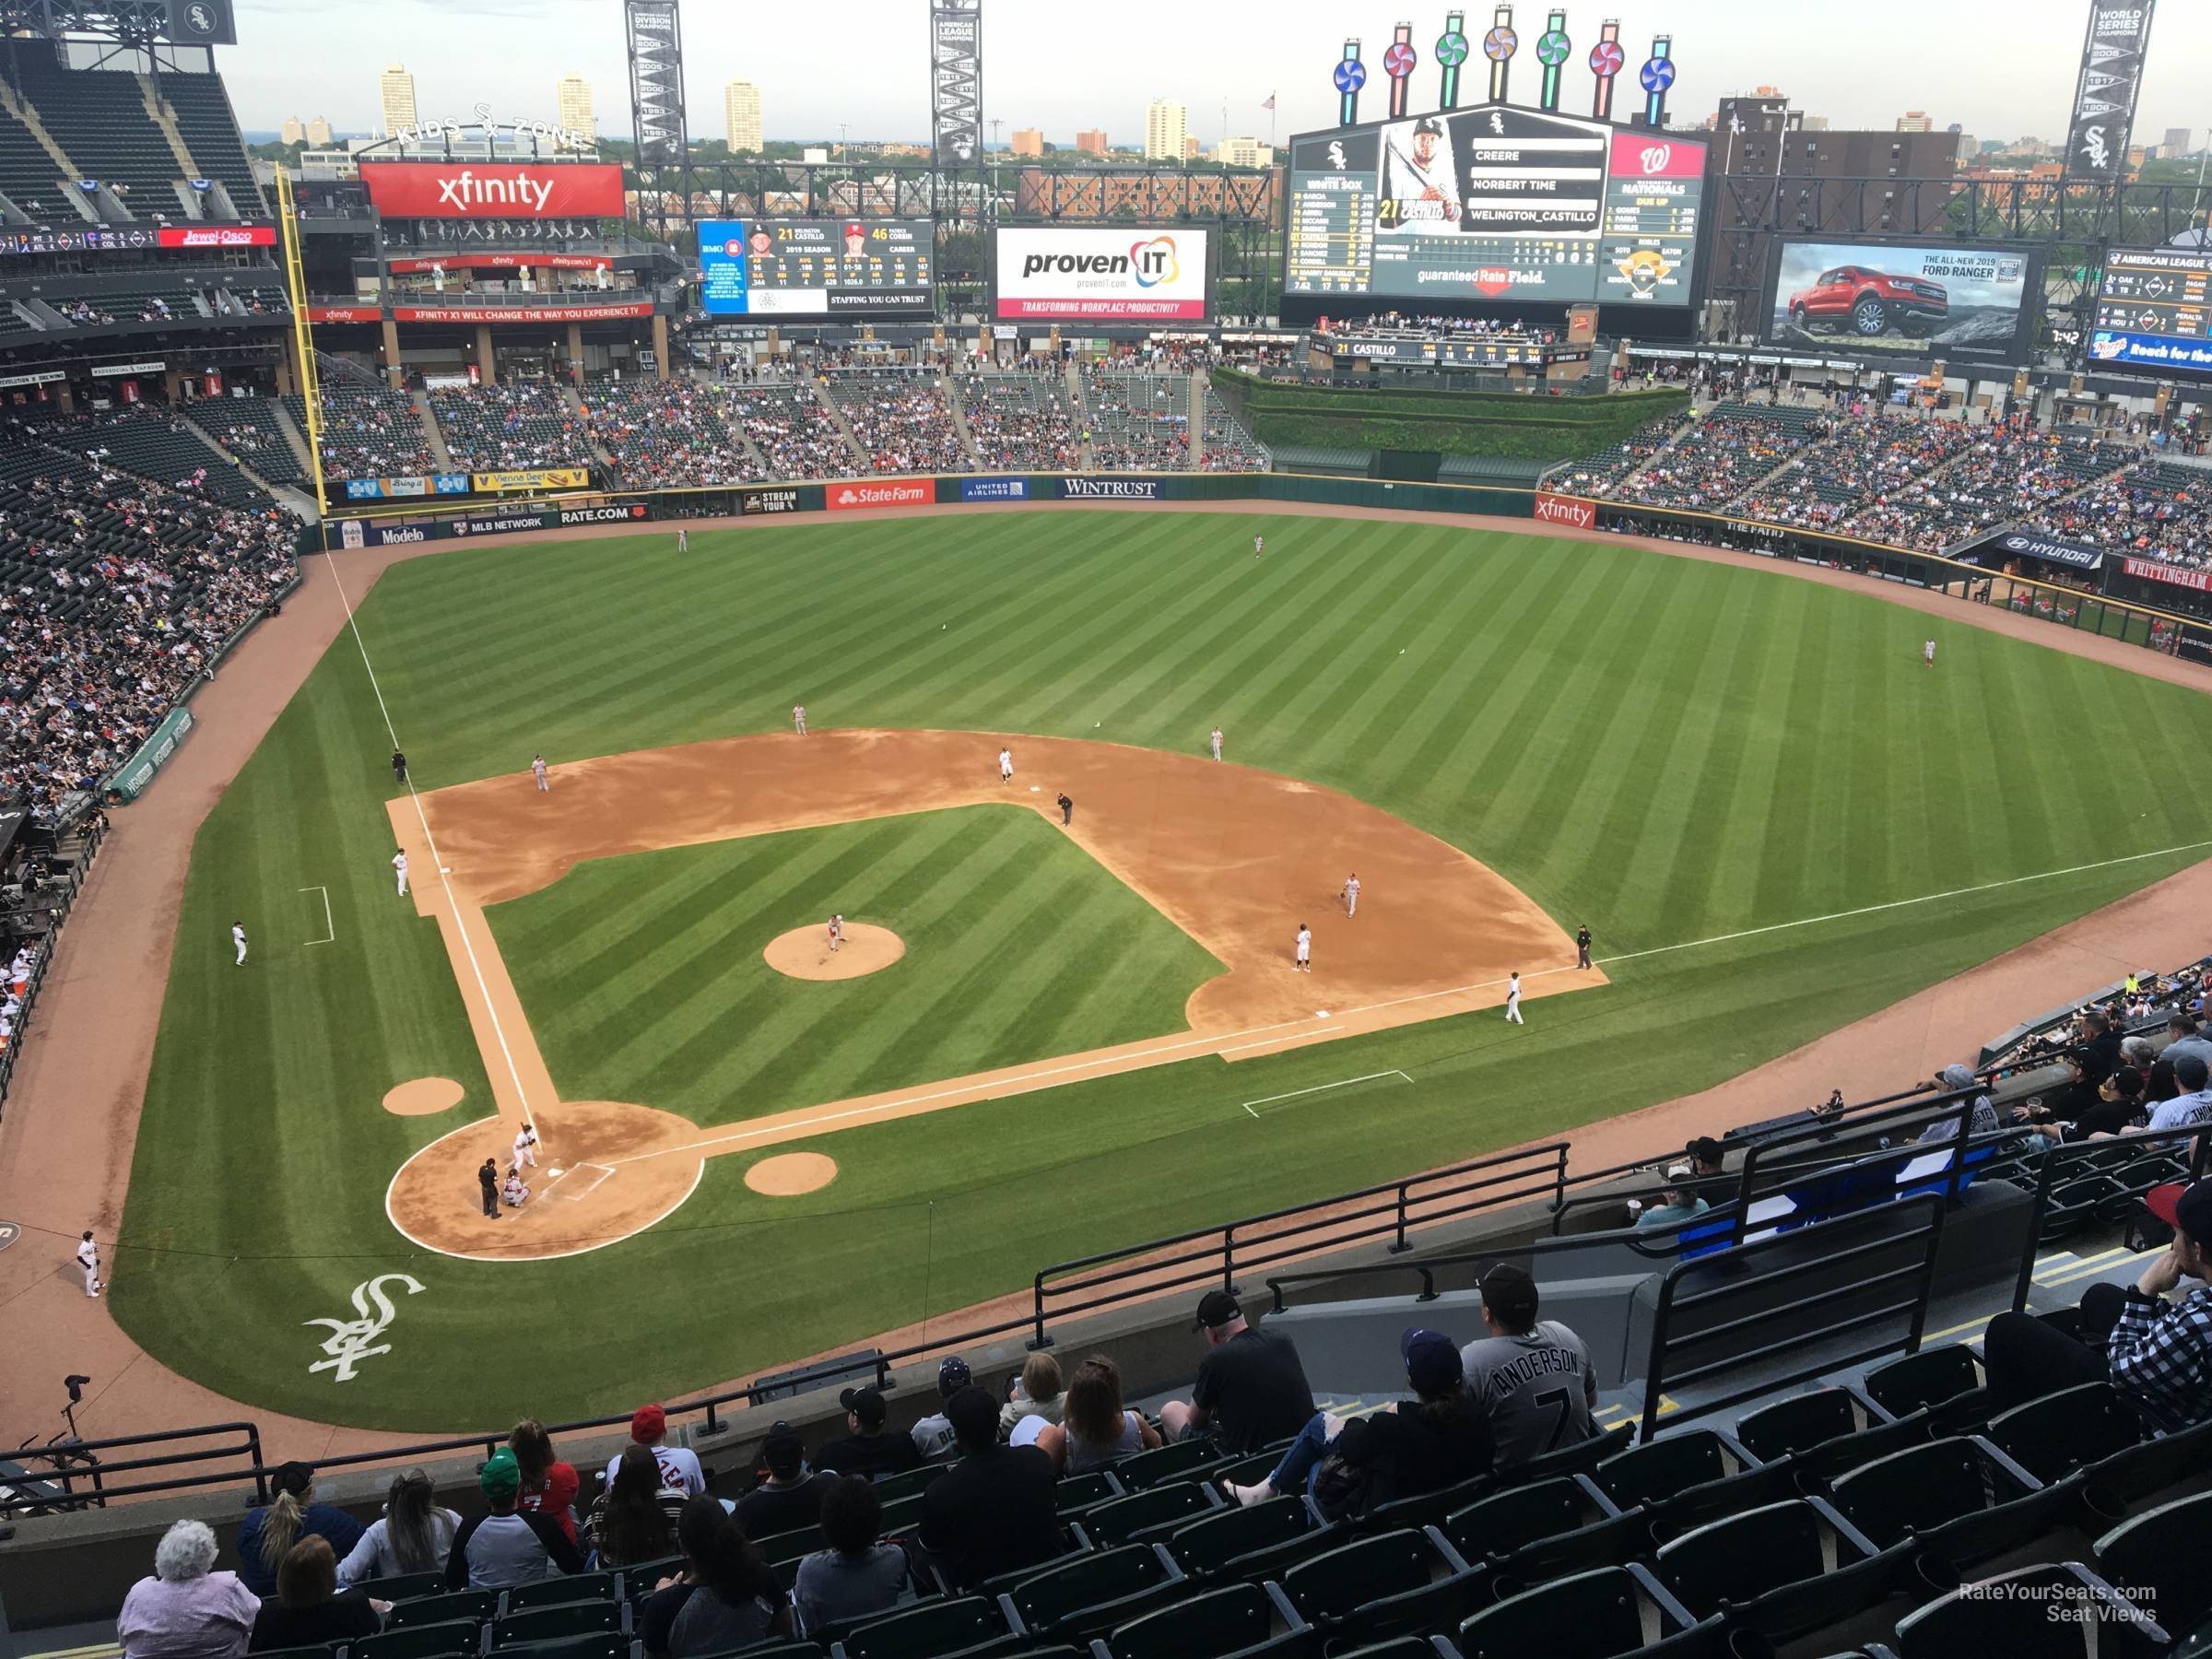 Guaranteed Rate Field Section 528 - RateYourSeats.com